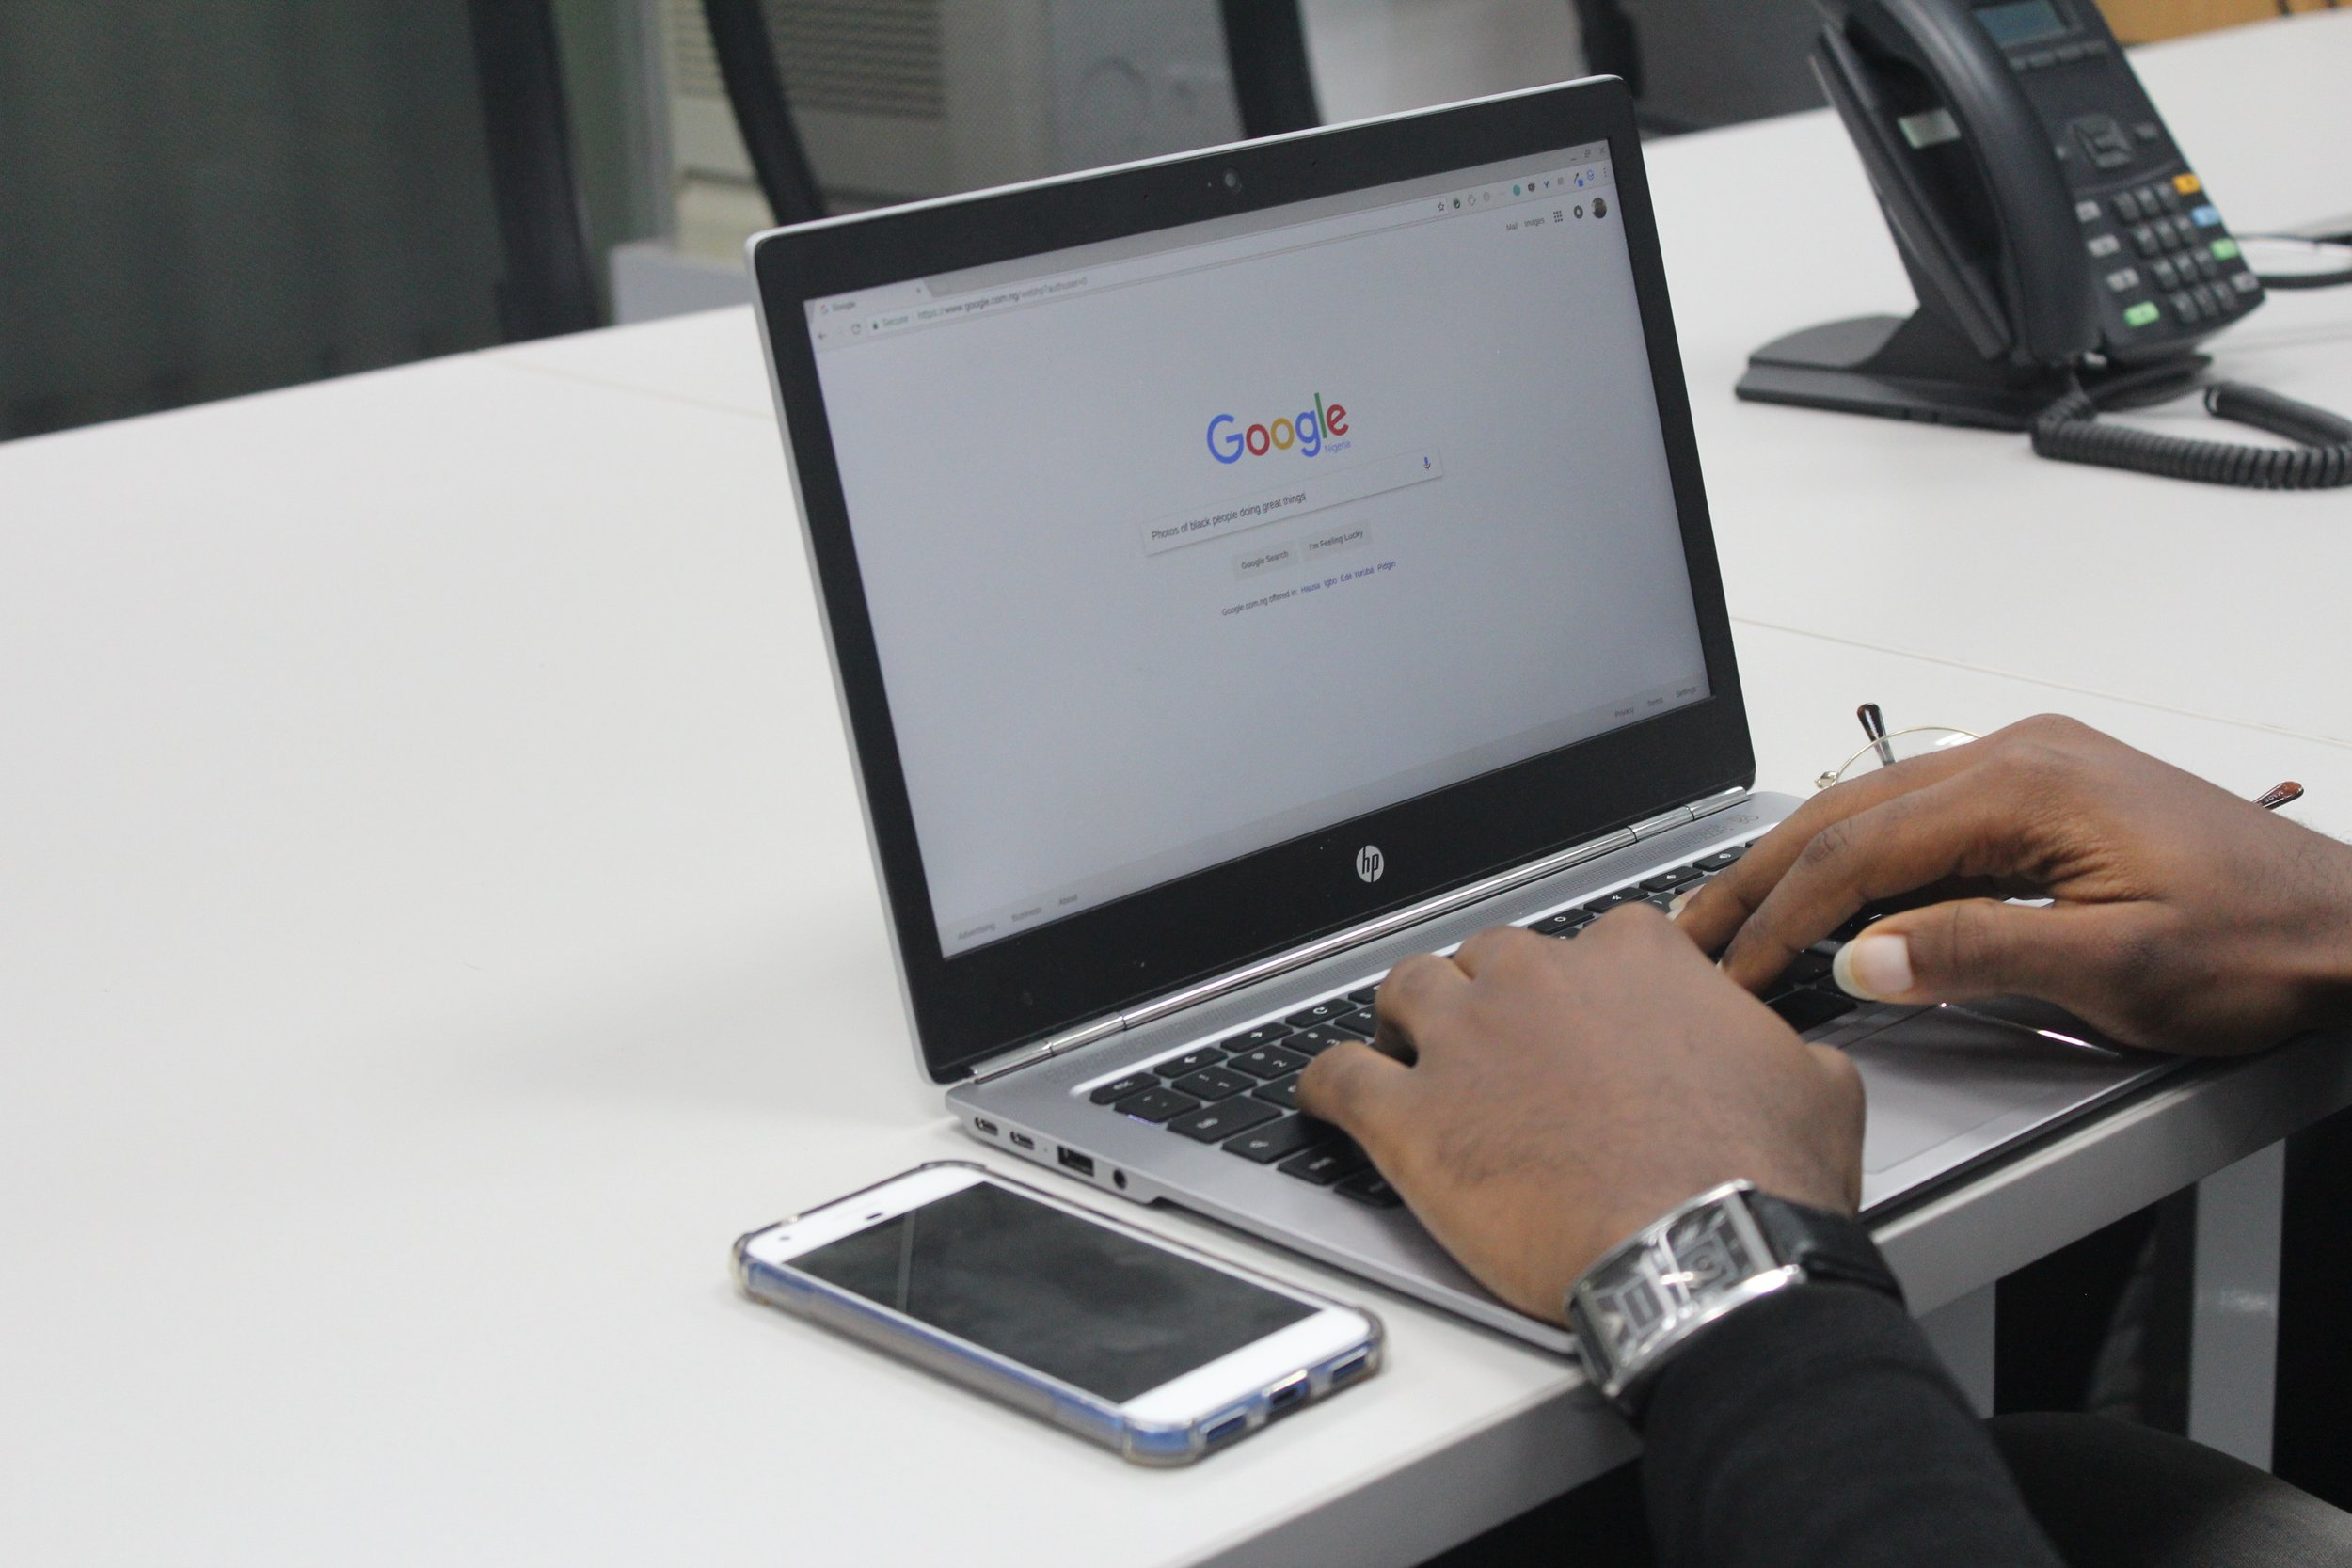 SEARCH ENGINE OPTIMiZATION - Search engines want to find you, but this can be pretty difficult without a solid backend foundation, we can help you get to the top spots of the search engines resulting in more website traffic, sales and exposure for your brand or store.